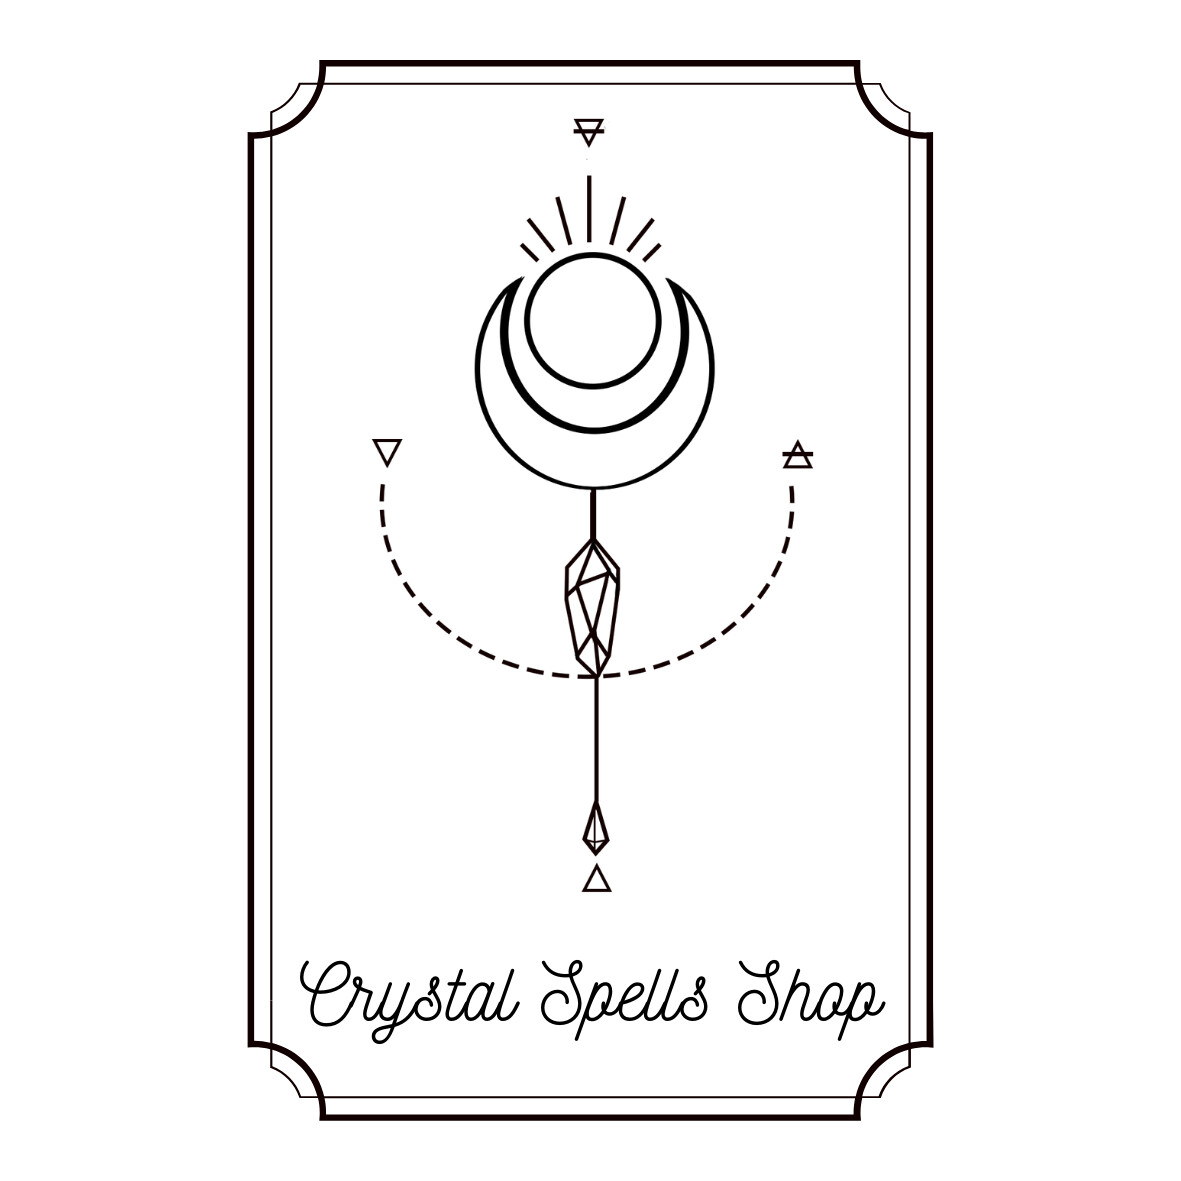 Logo created for online shop